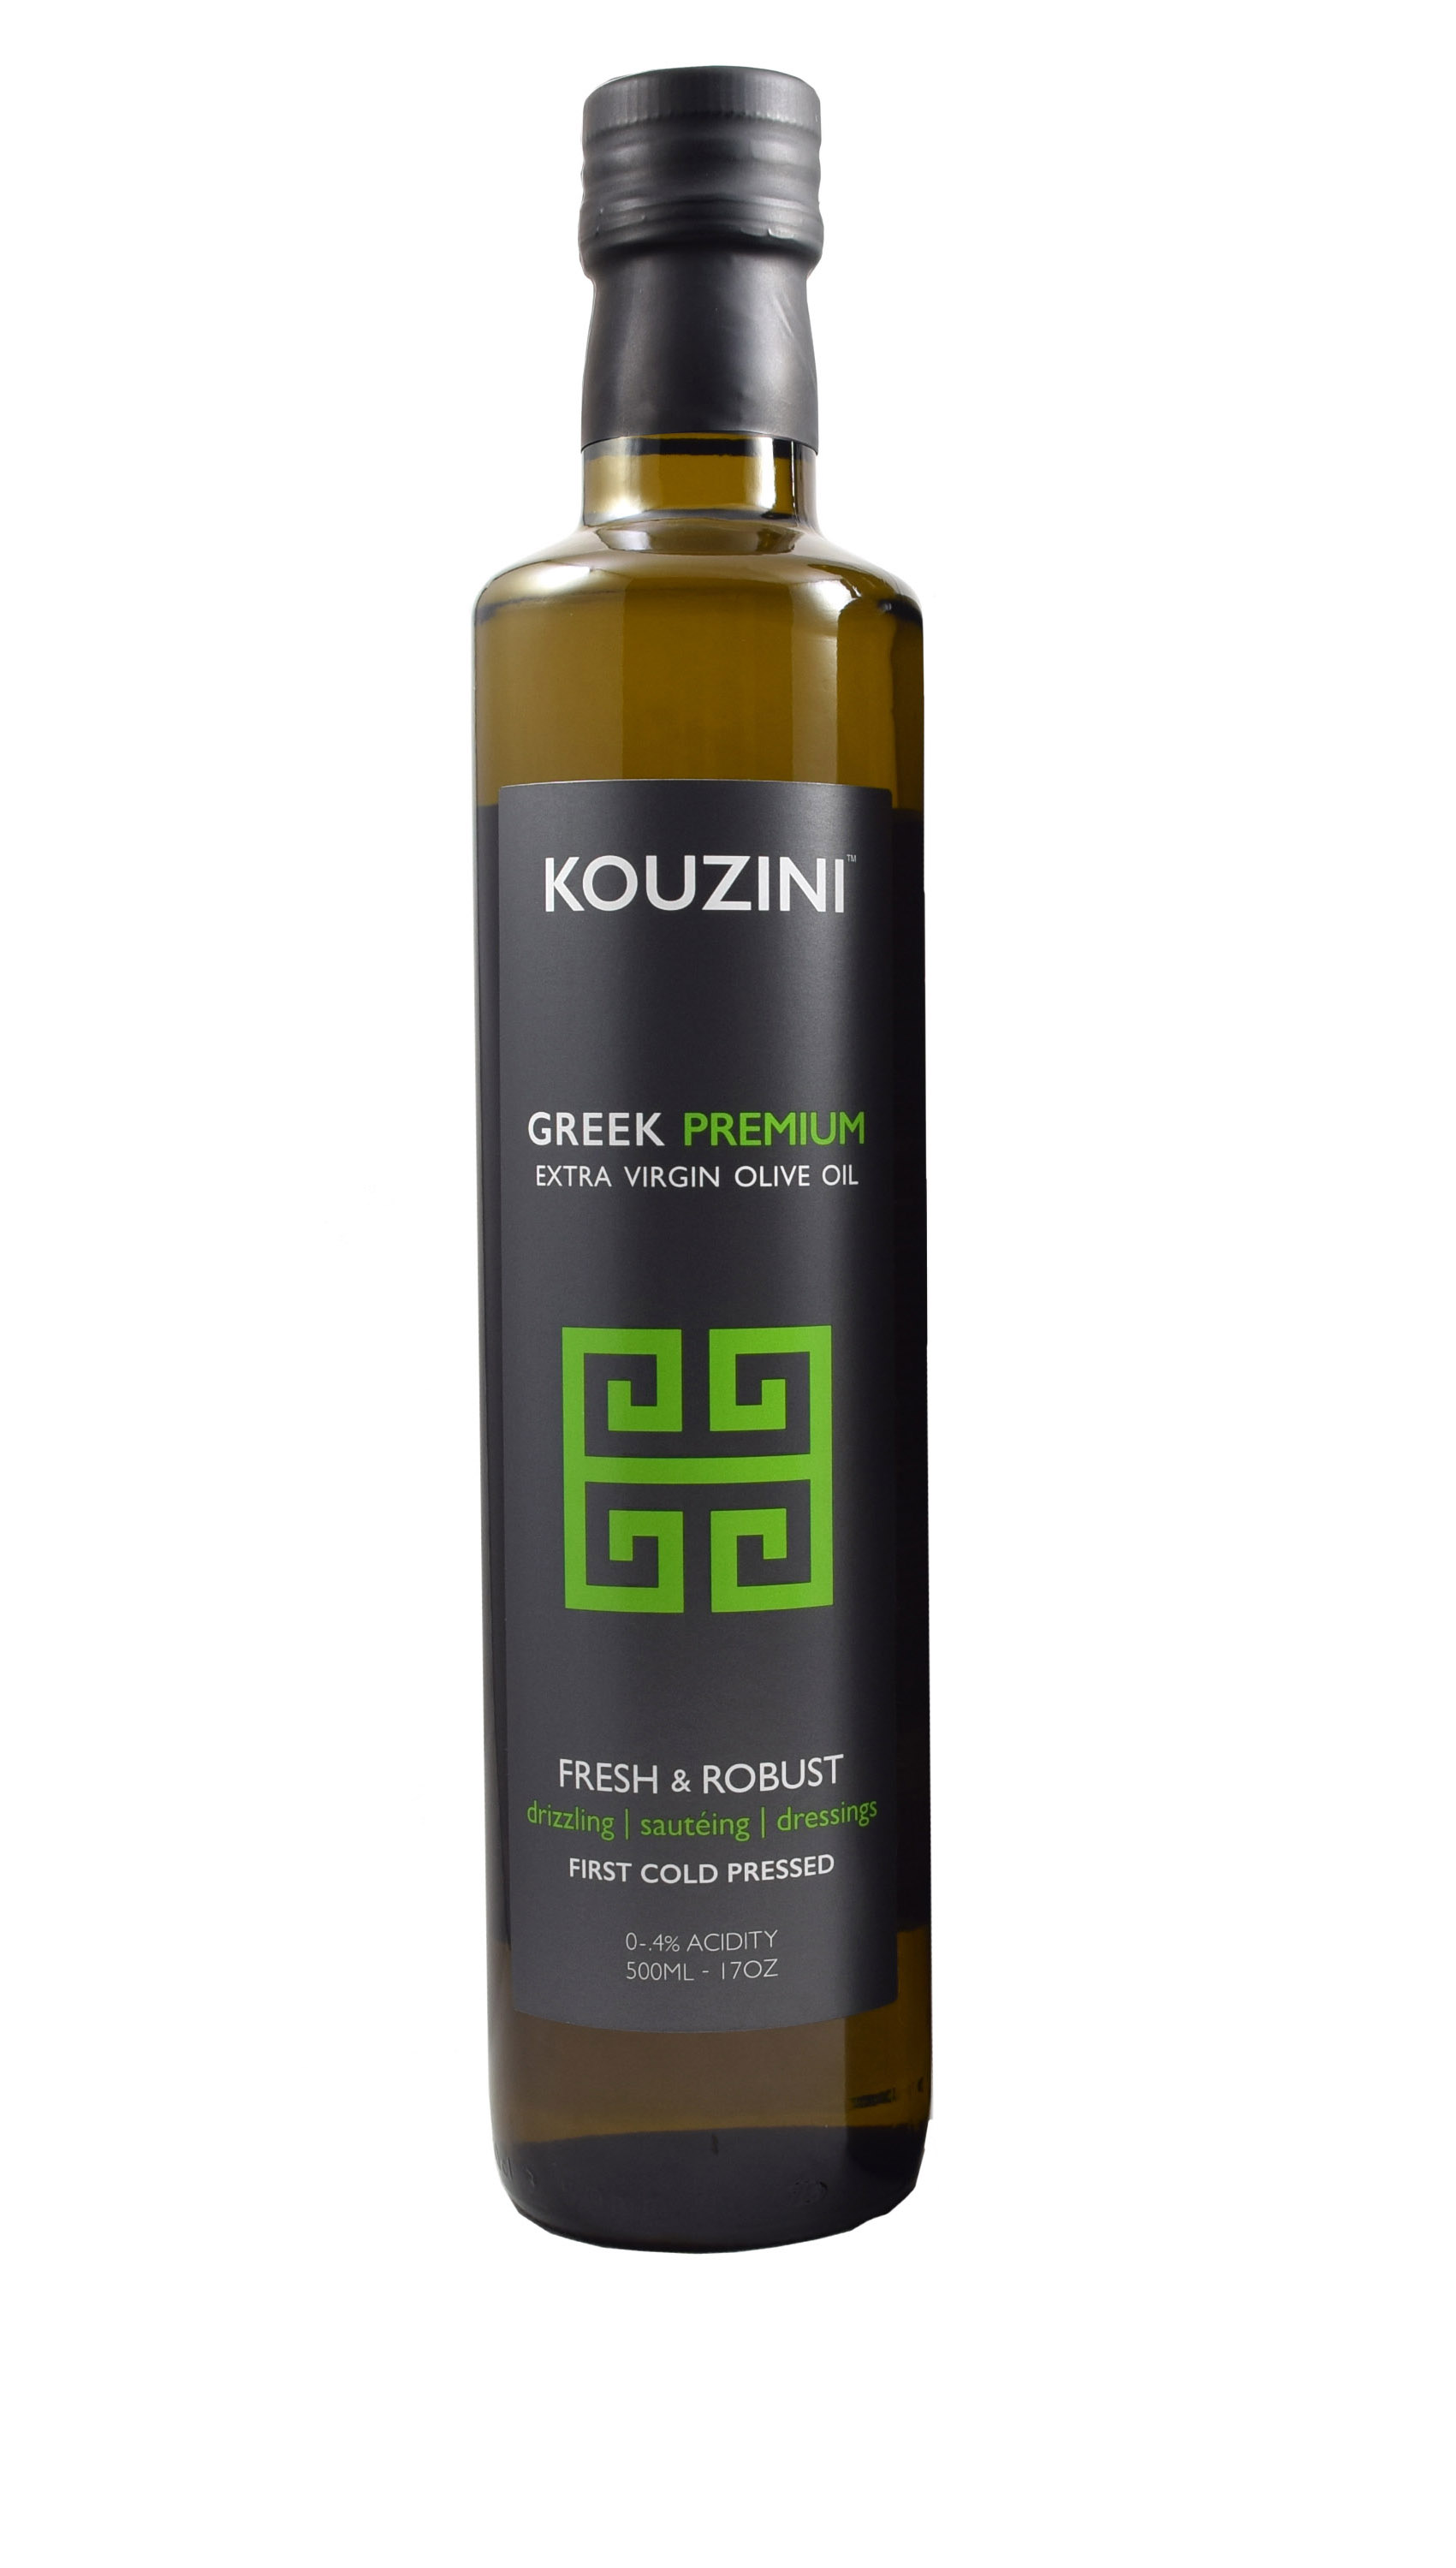 KOUZINI ORGANIC ULTRA PREMIUM EXTRA VIRGIN OLIVE OILS. OUR greek OLIVE OIL IS CERTIFIED ORGANIC AND NONGMO VERIFIED